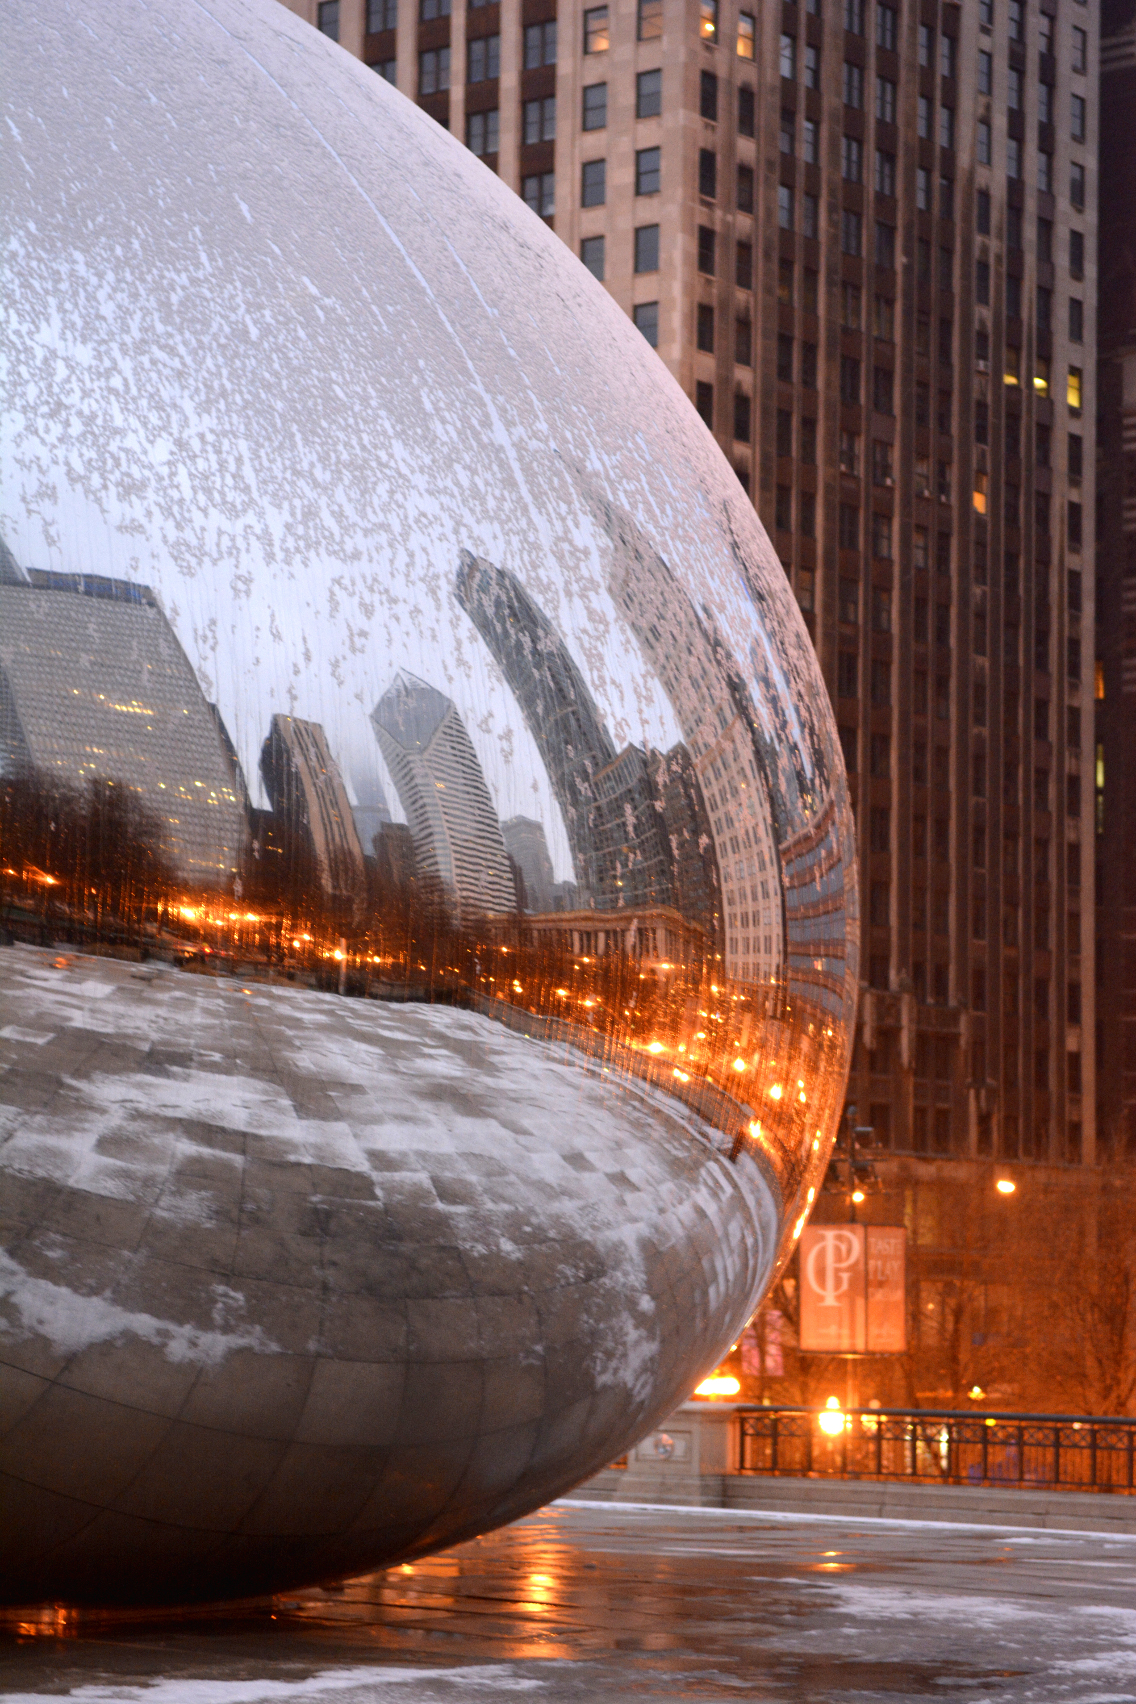 Chicago Millennium Park Cloud Gate The Bean 5